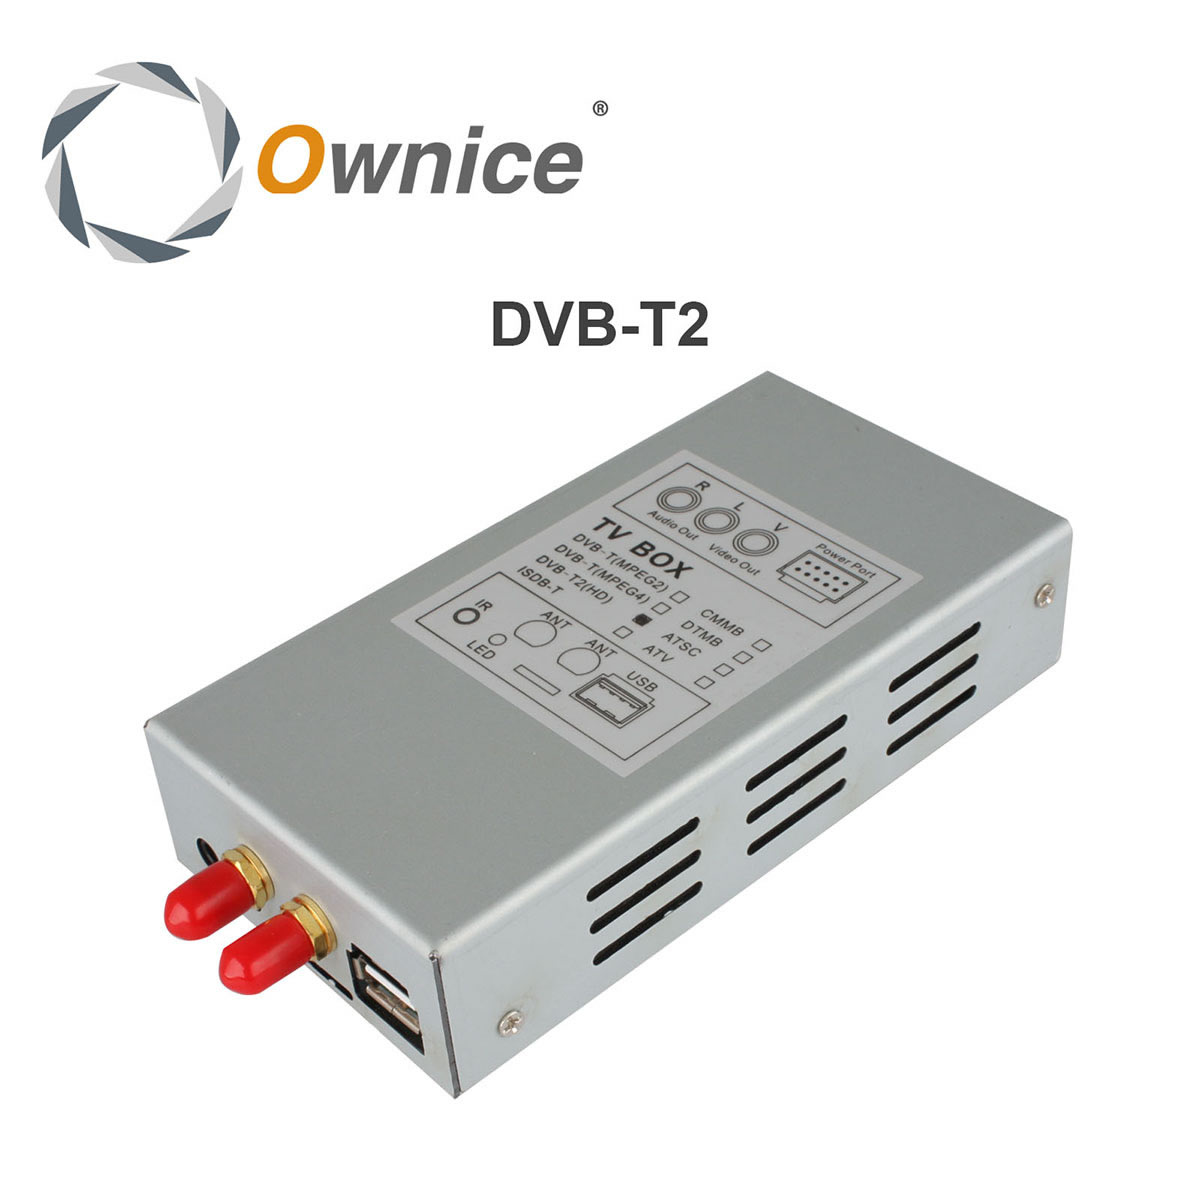 Special DVB-T2 Digital Box for Ownice Car DVD Player For Russia Thailand Malaysia area. The item just for our DVD вверх dvd box